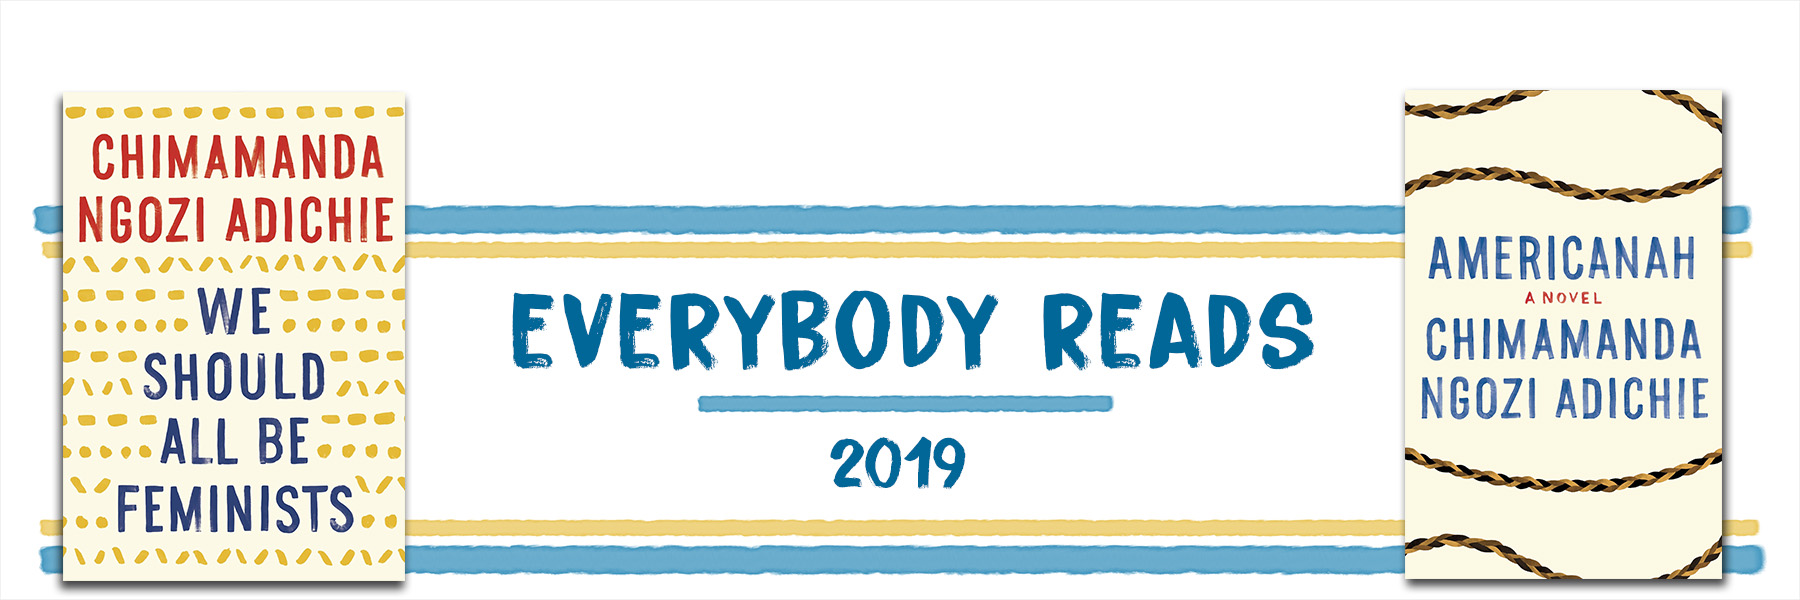 Everybody Reads 2019 banner image